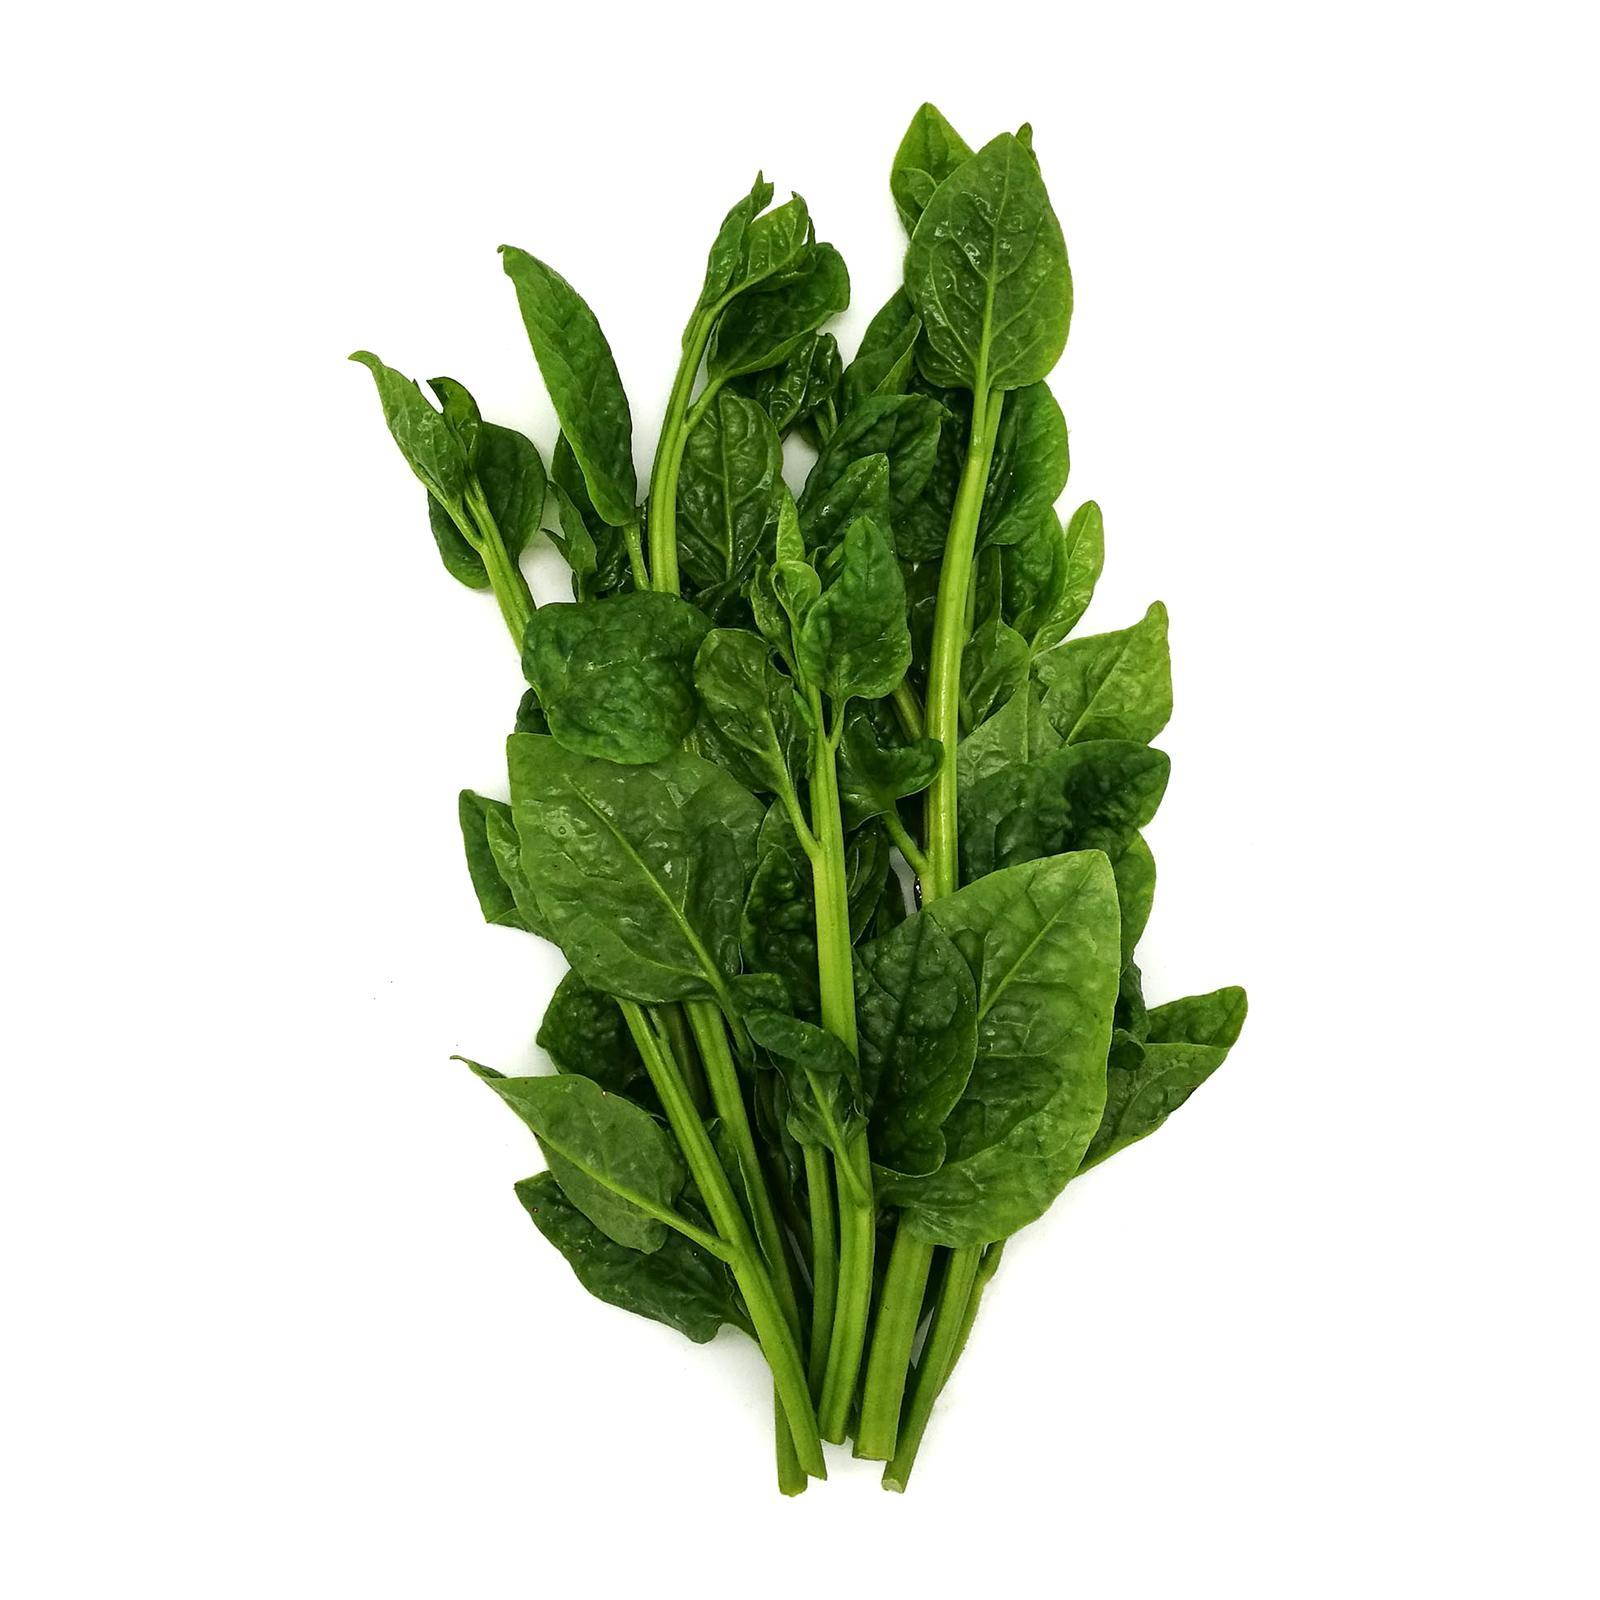 LOVE BIO Organic New Zealand Spinach